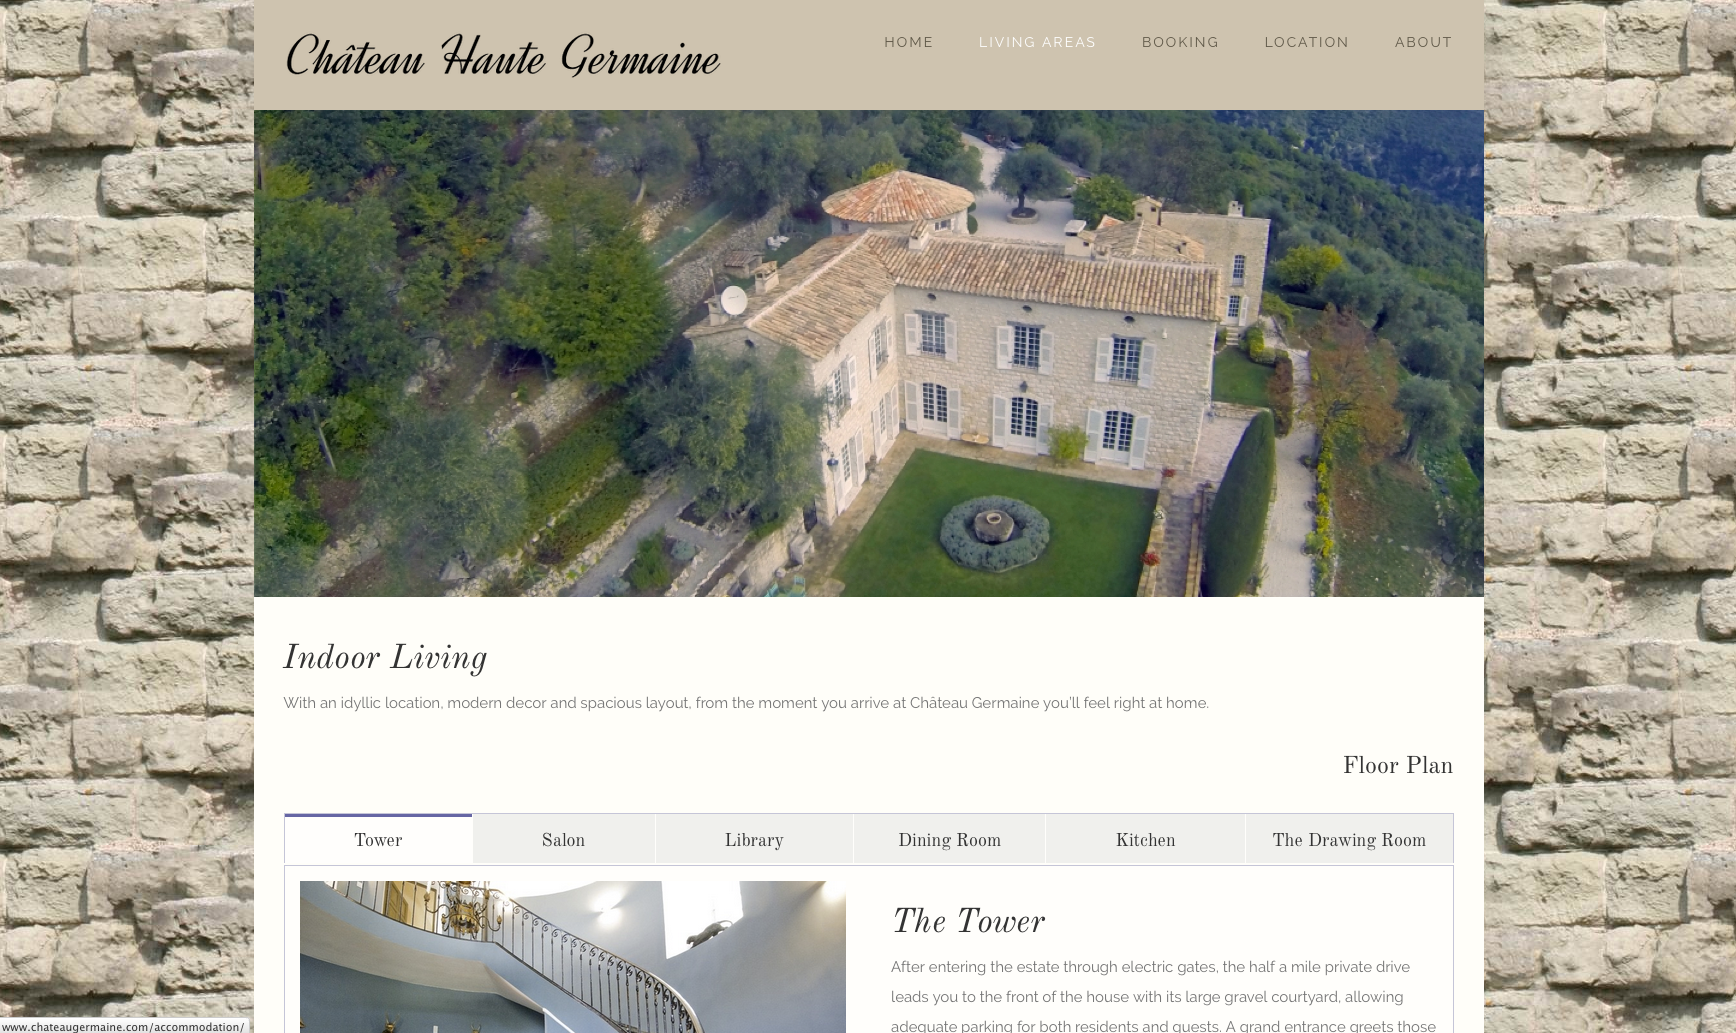 Chateau Haute Germaine website design and build by collective digital